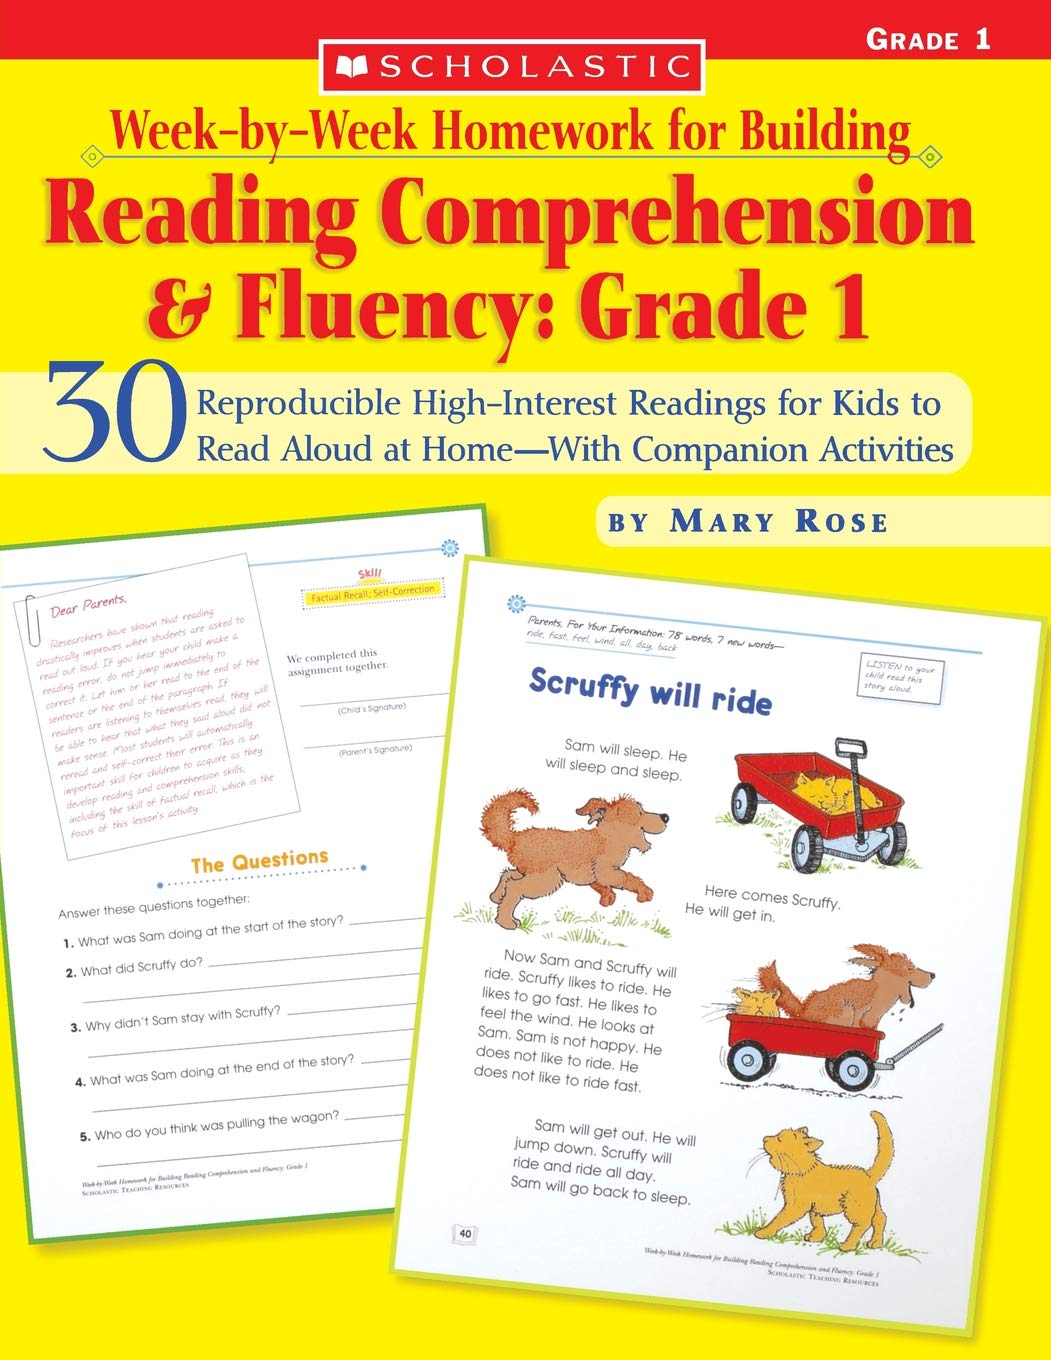 Amazon com: Week-by-Week Homework for Building Reading